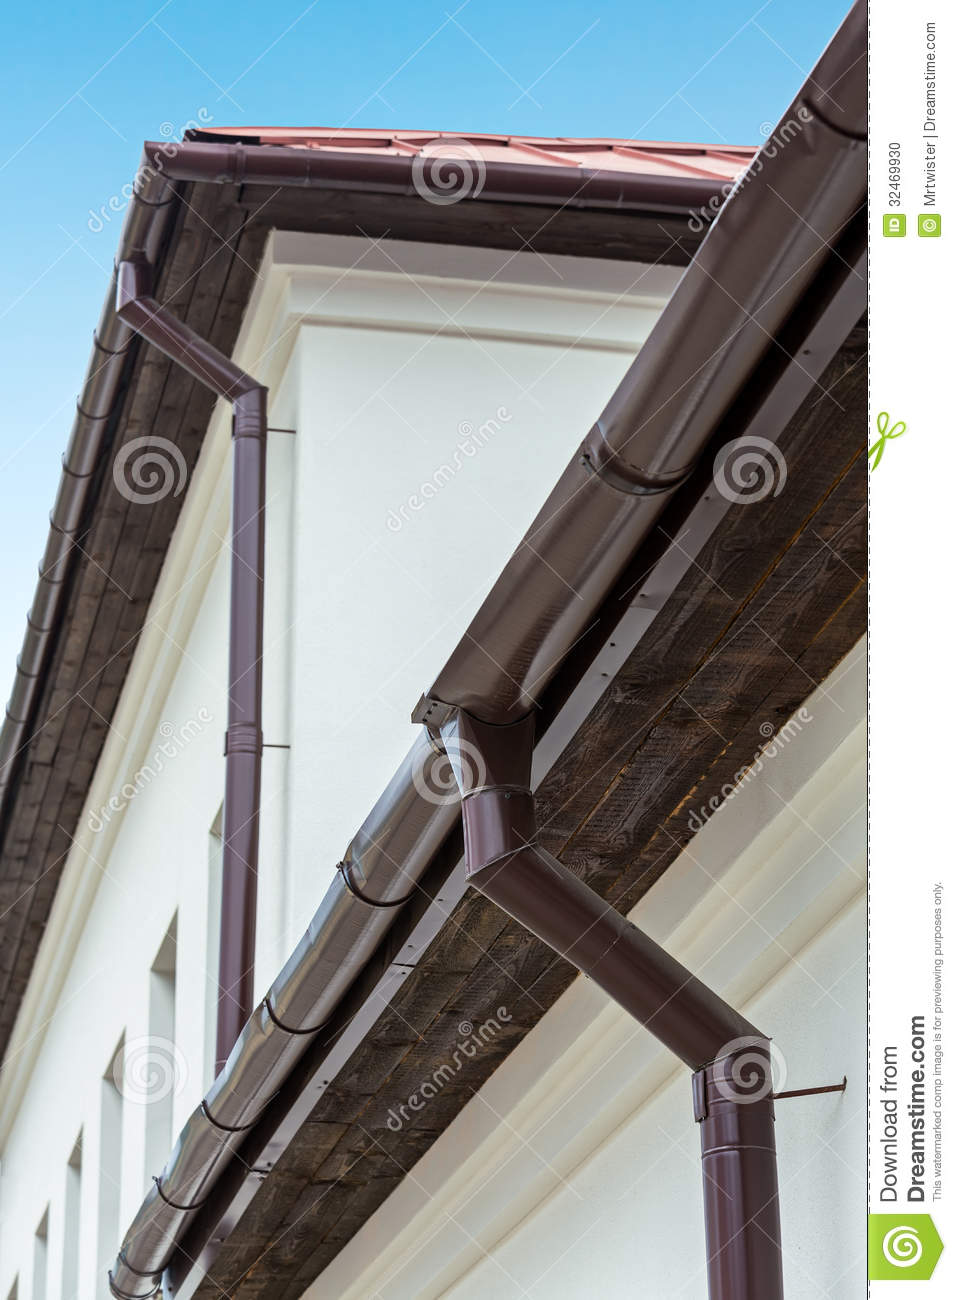 Eavestrough With Downspout Stock Photo Image Of